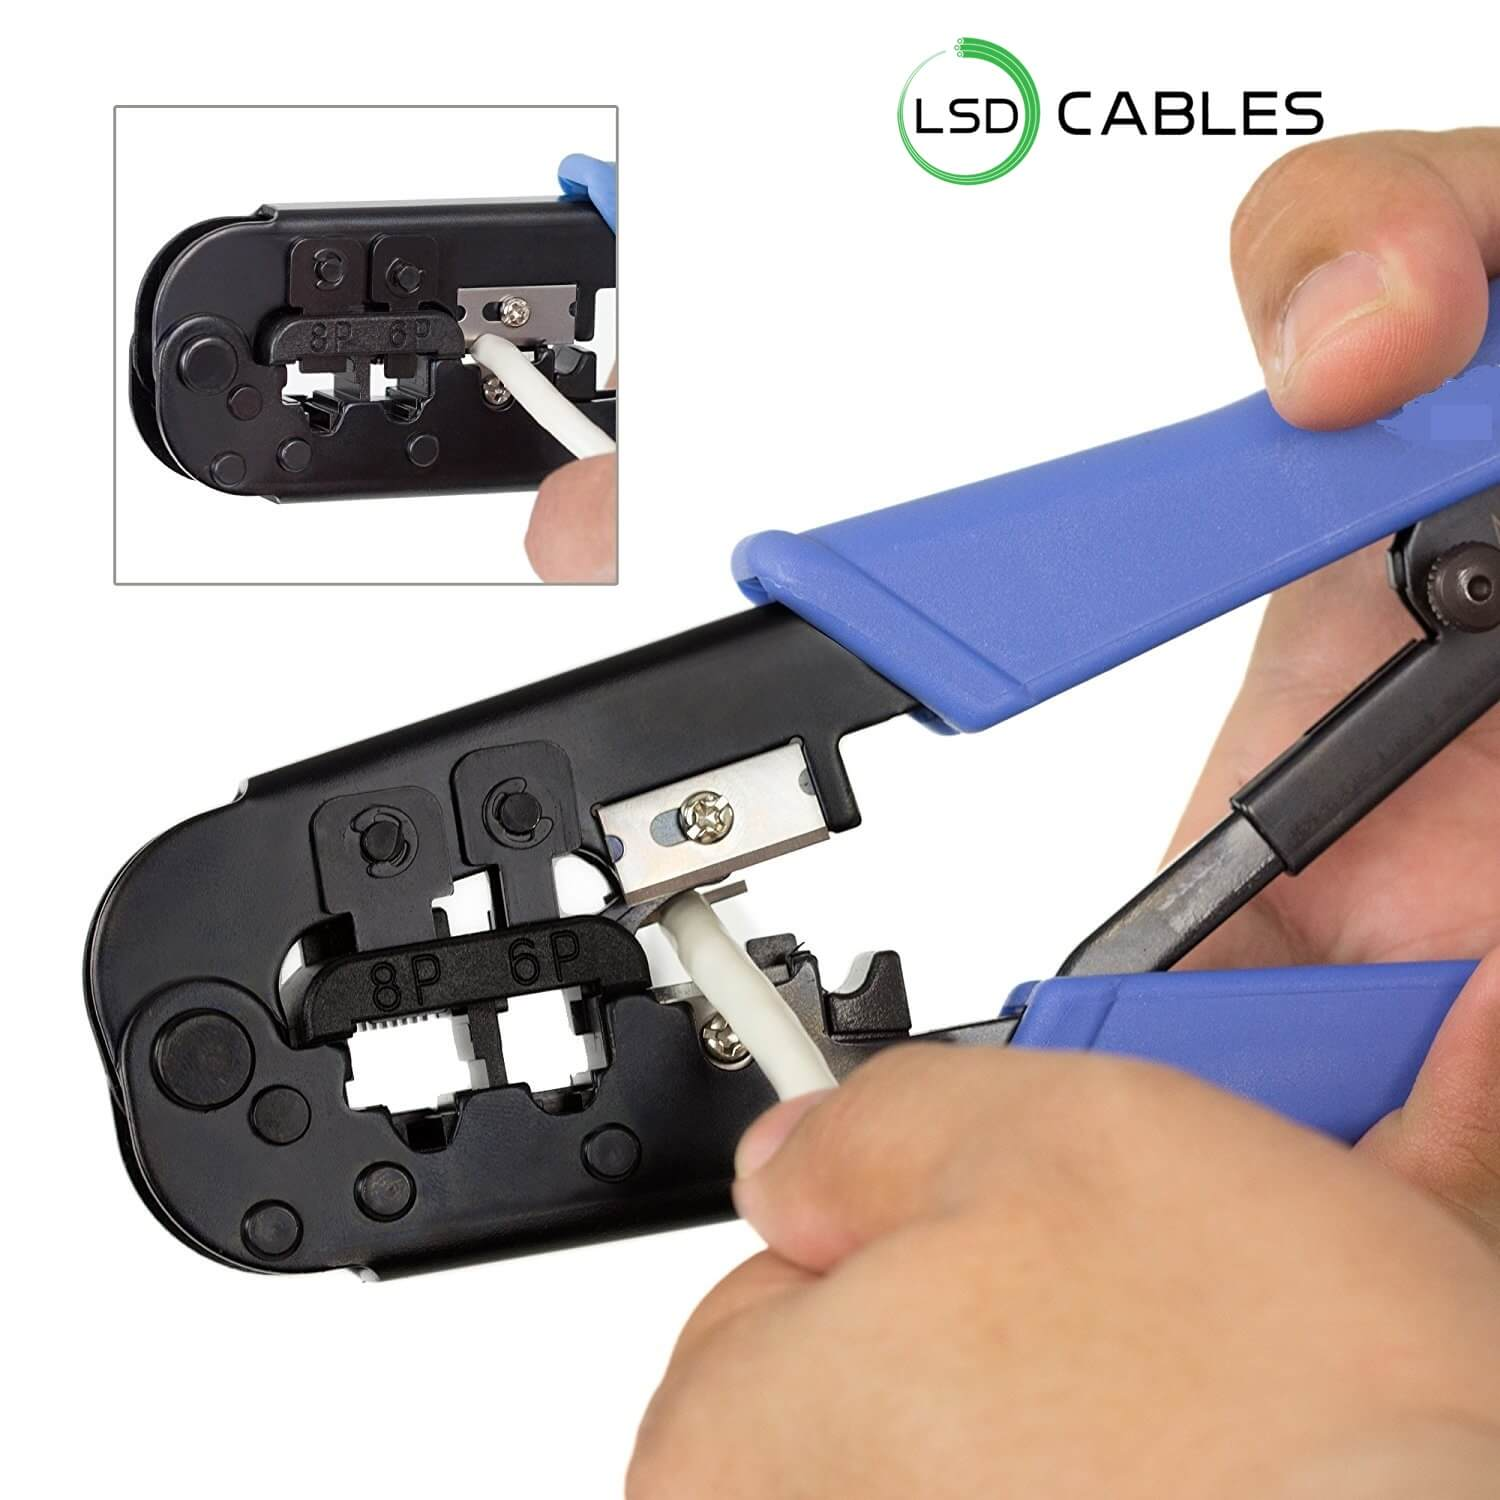 LSDCABLES RJ45 Crimping Tool L T01 4 - Crimping Tool Easy Handling RJ45 Connector  L-T01